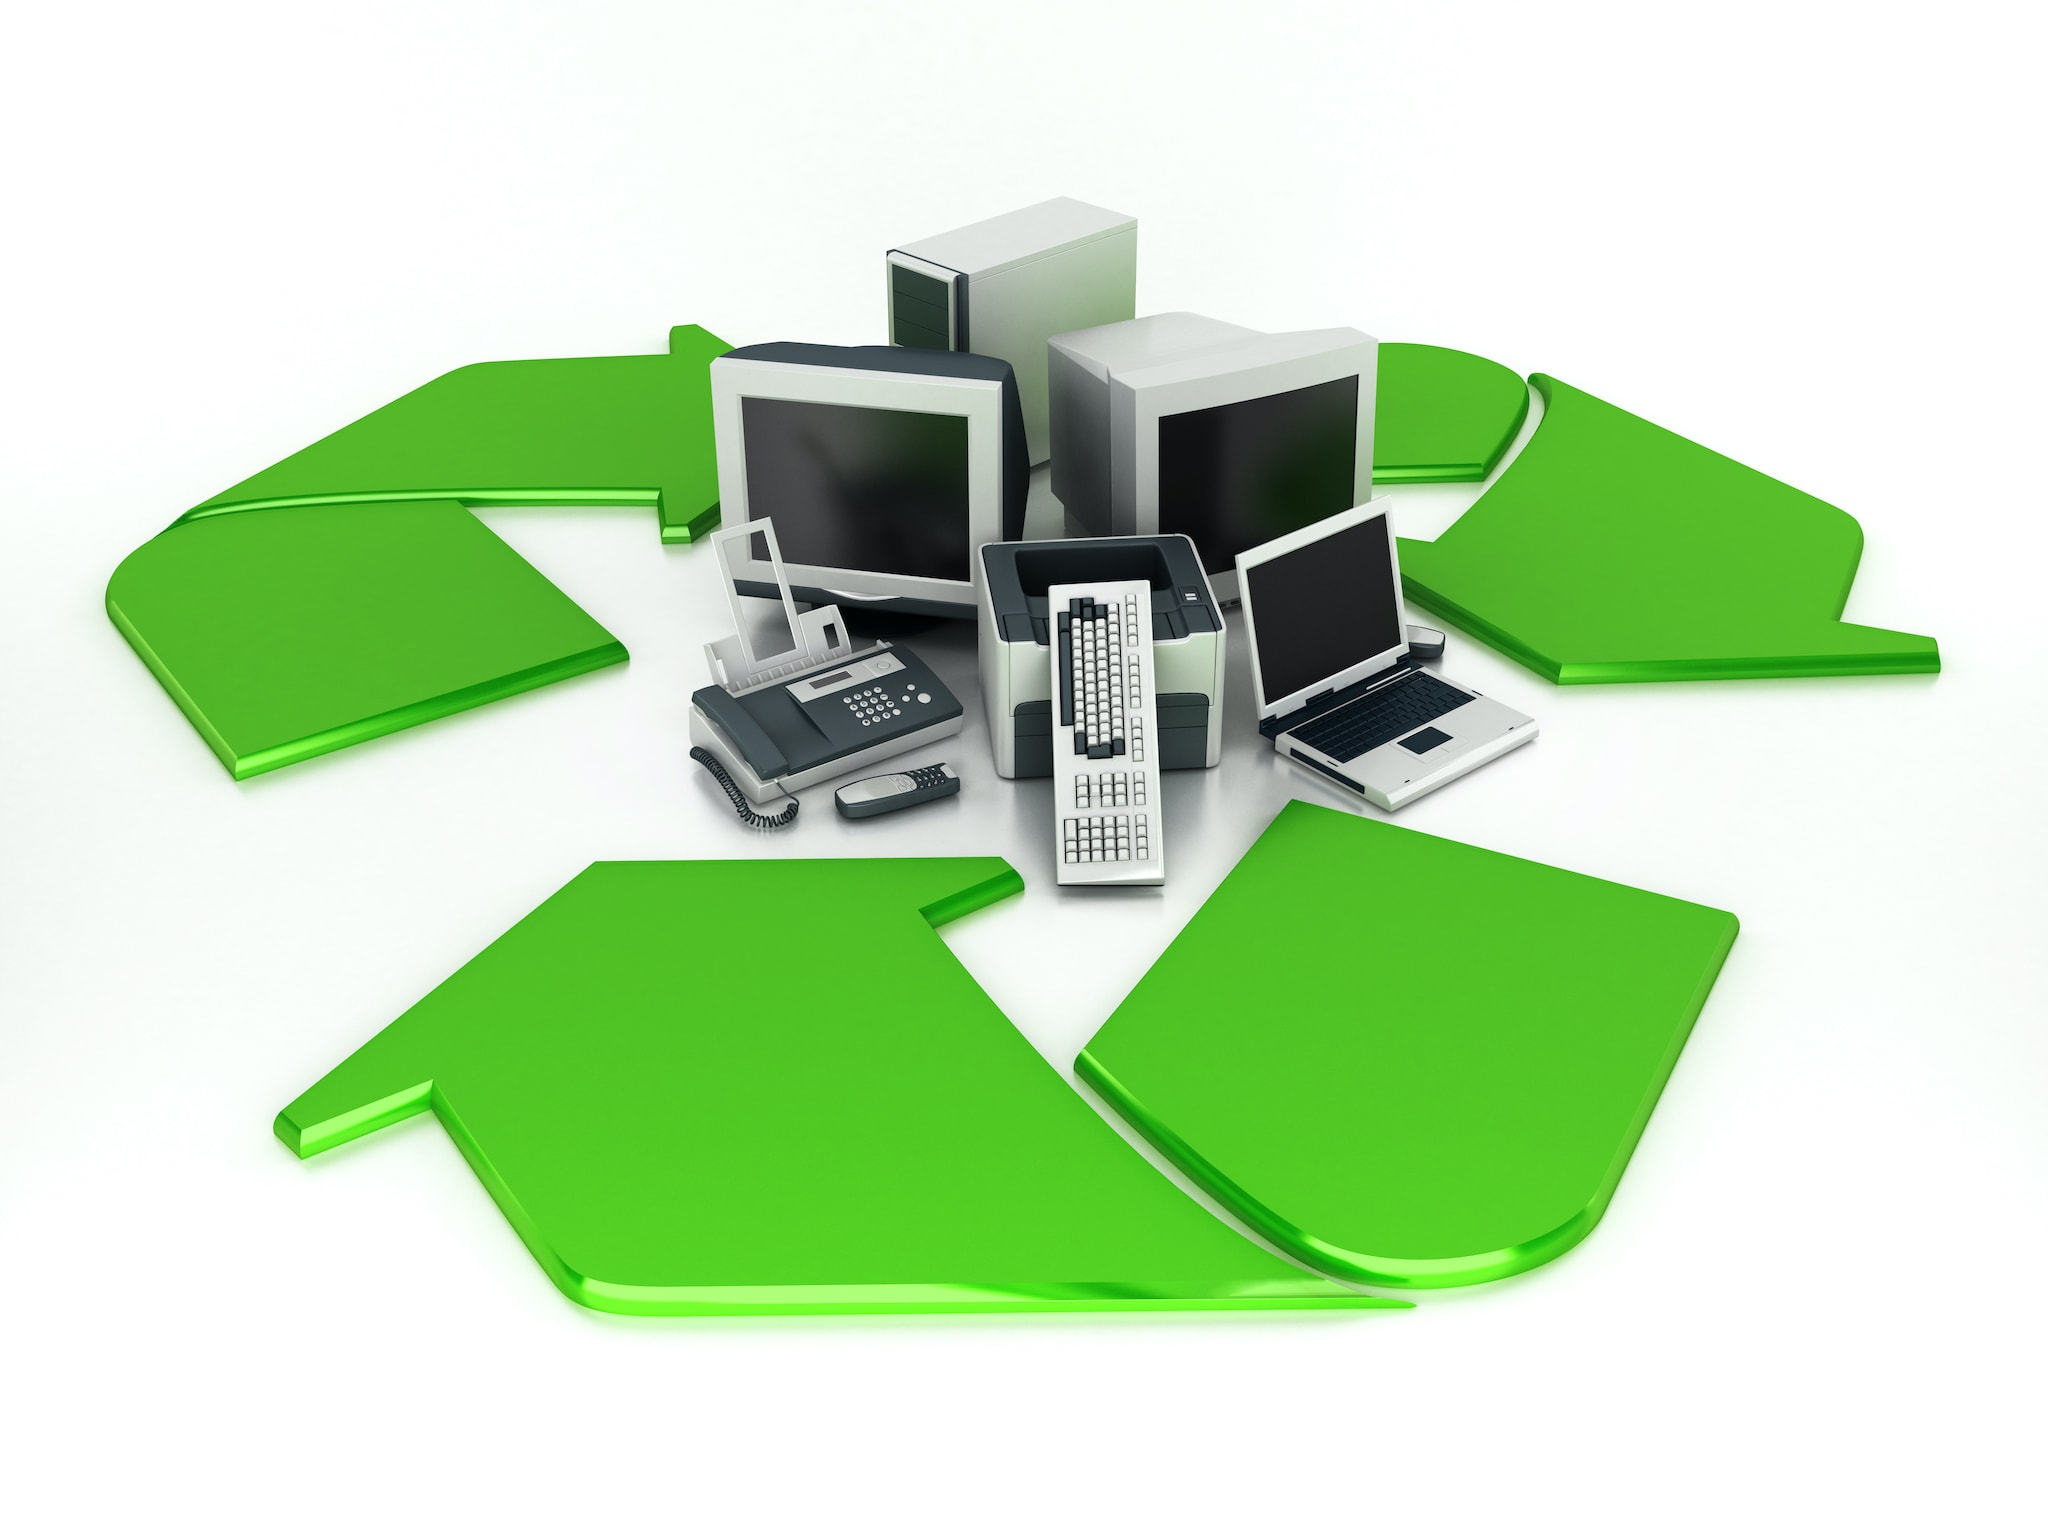 Old computers parts and electronics standing at the center of recycling symbol.Similar images: